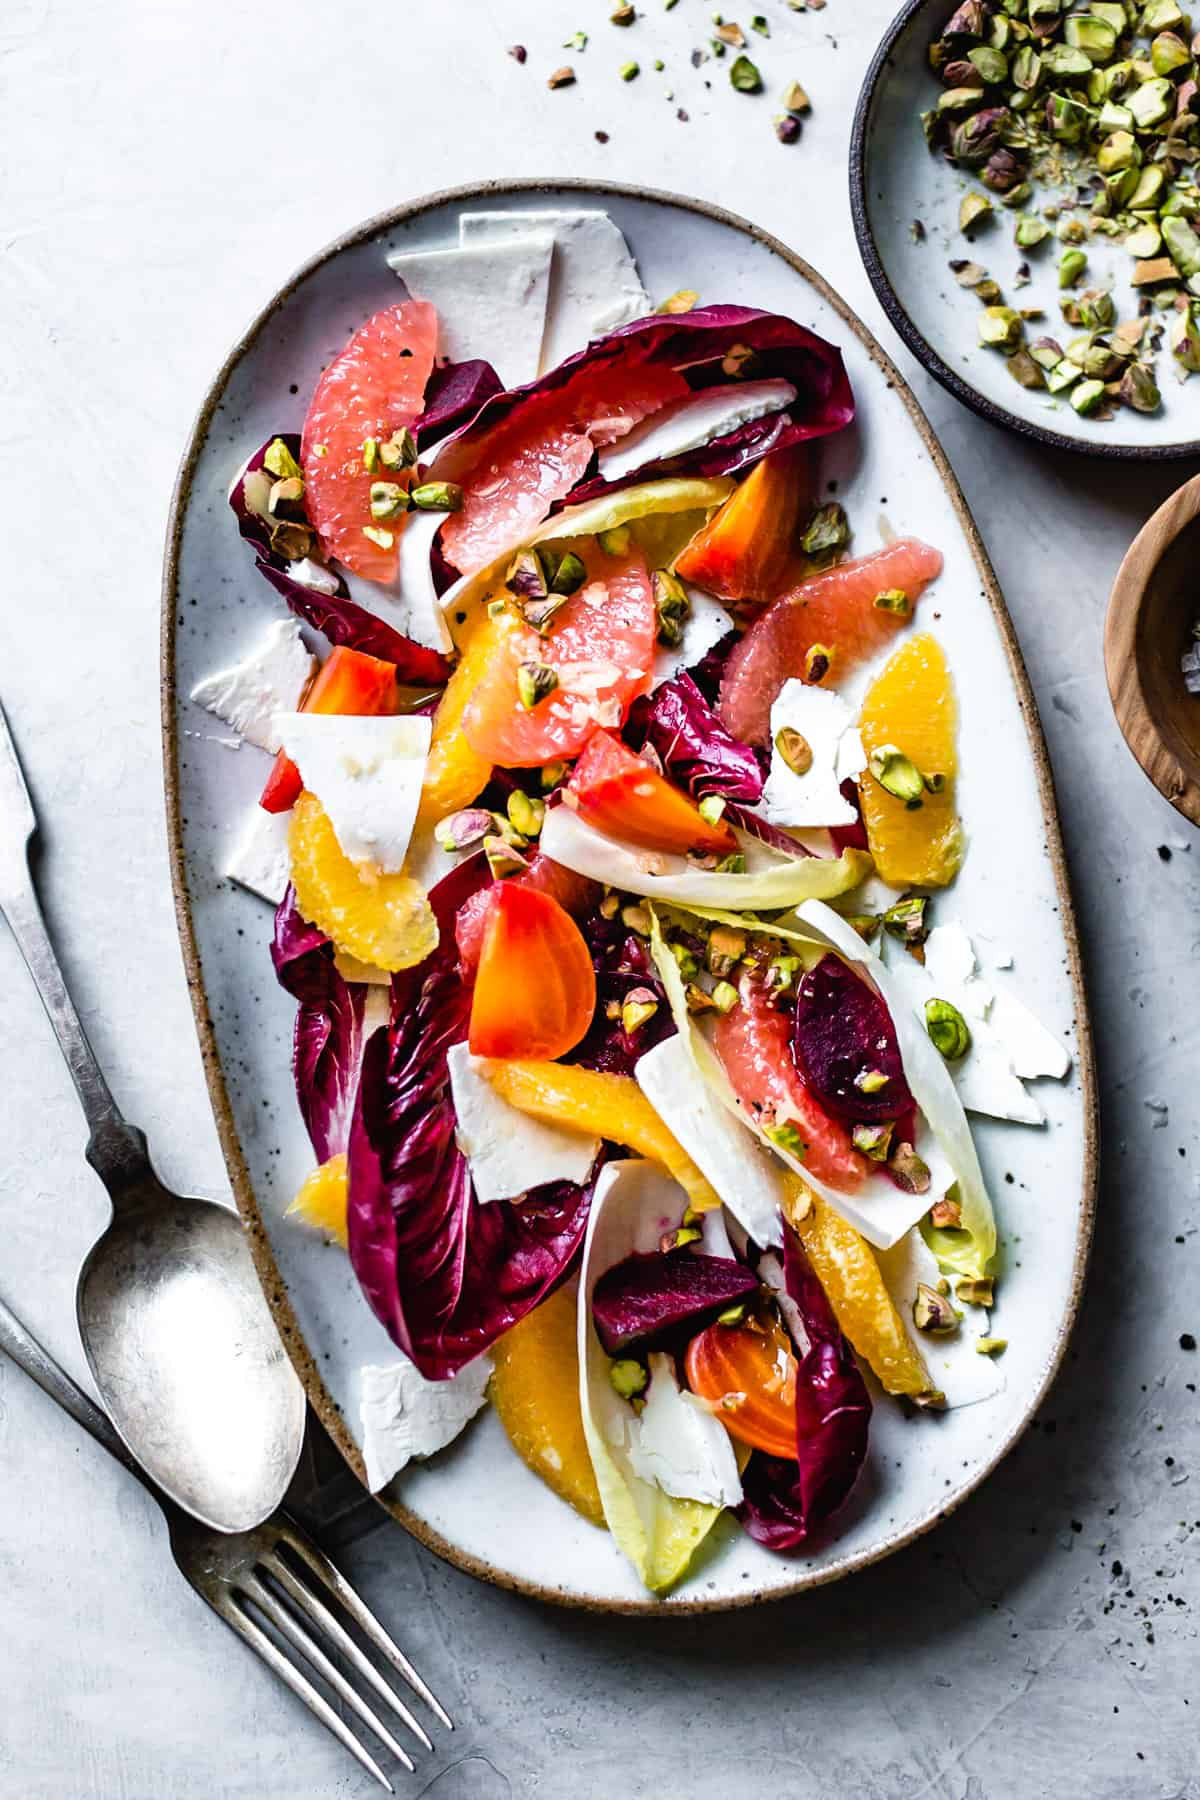 Beet Citrus Chicory Salad with Ricotta Salata and Pistachios